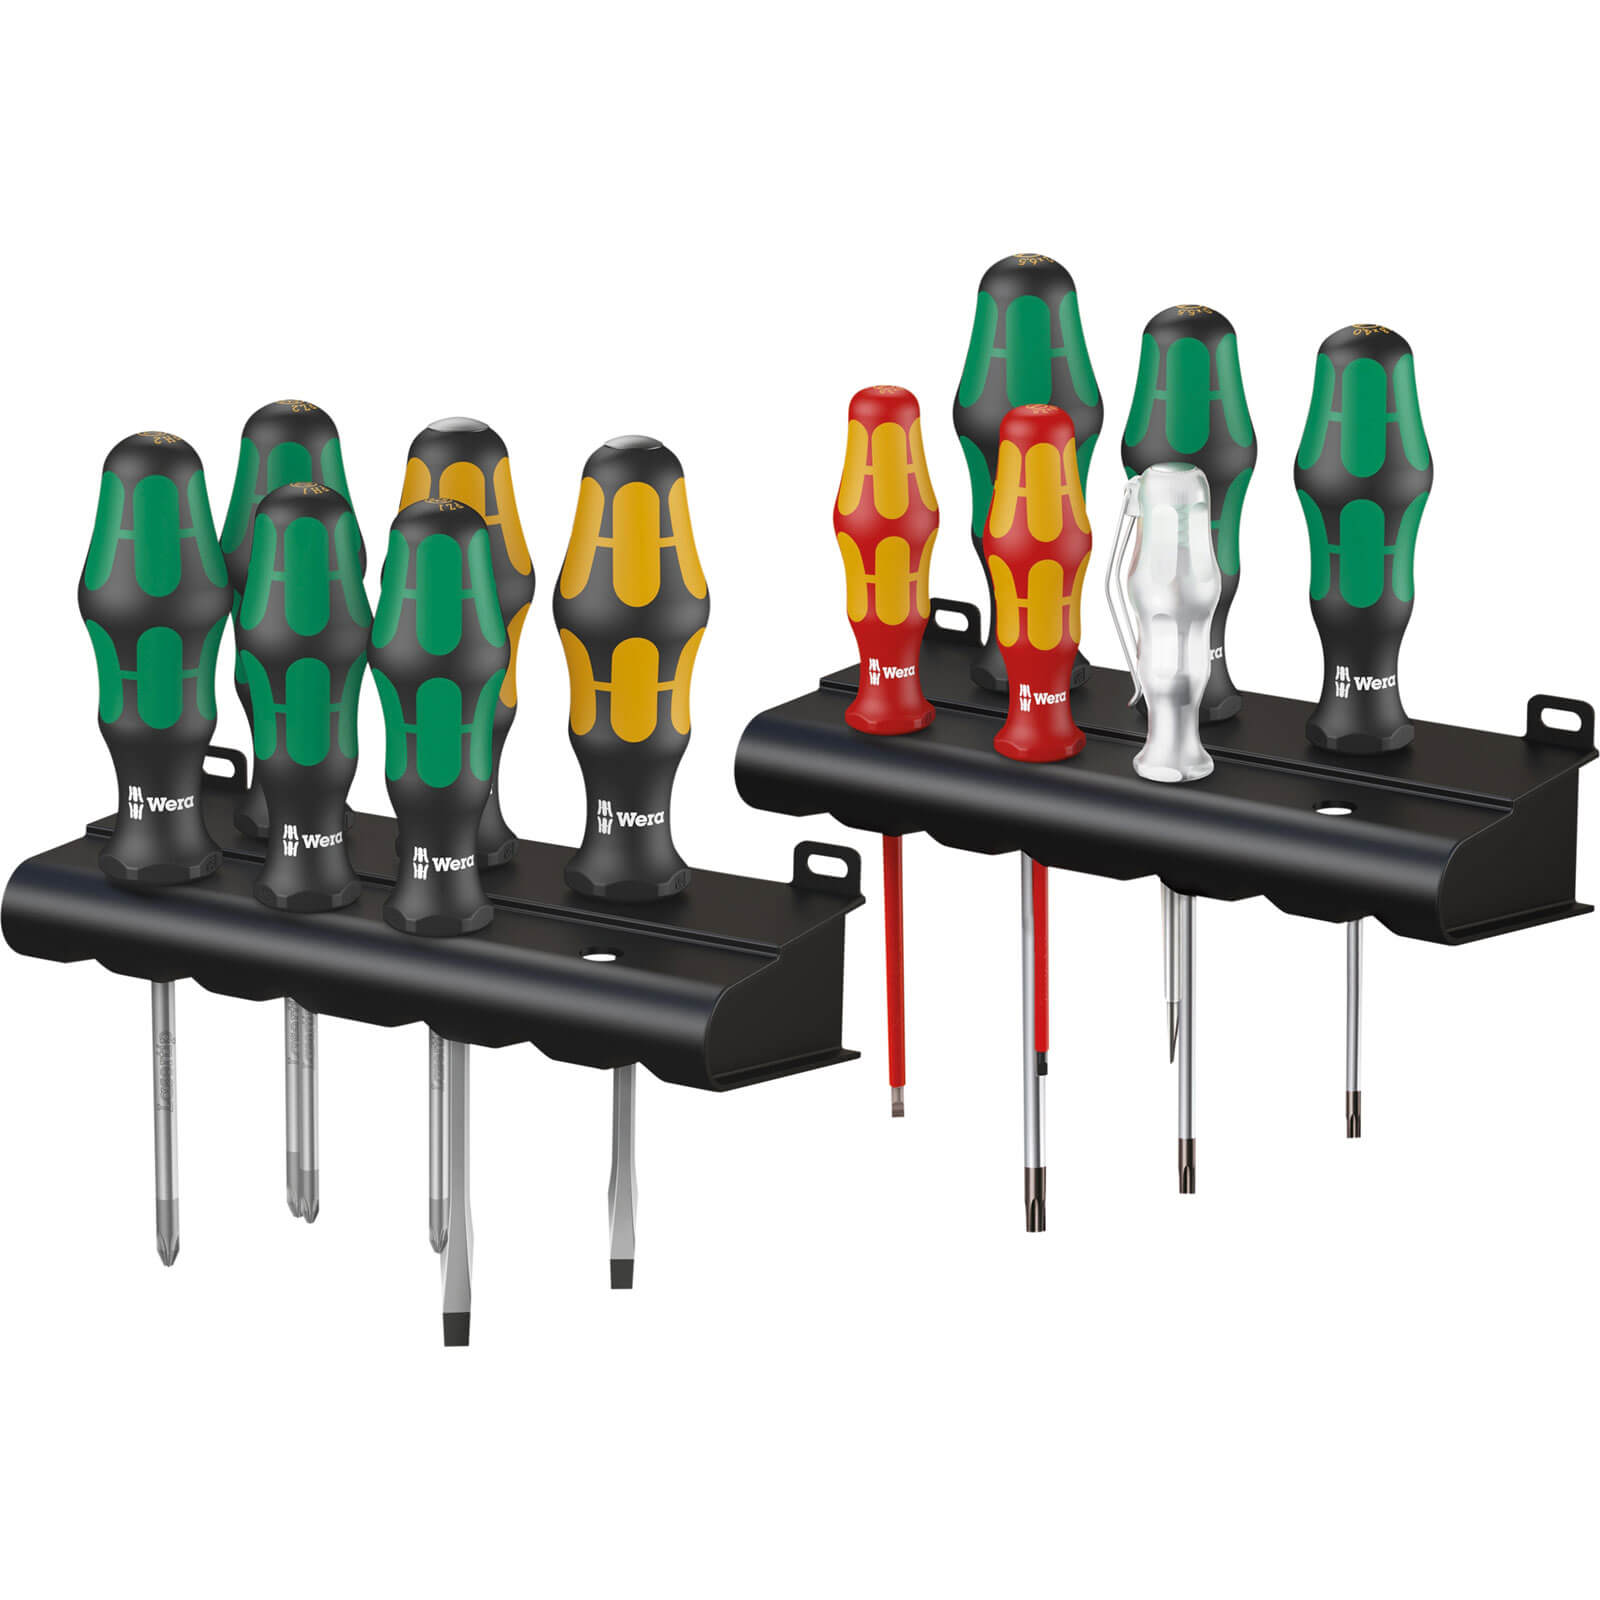 Wera Kraftform Plus 12 Piece 2XL Artisan Screwdriver Set